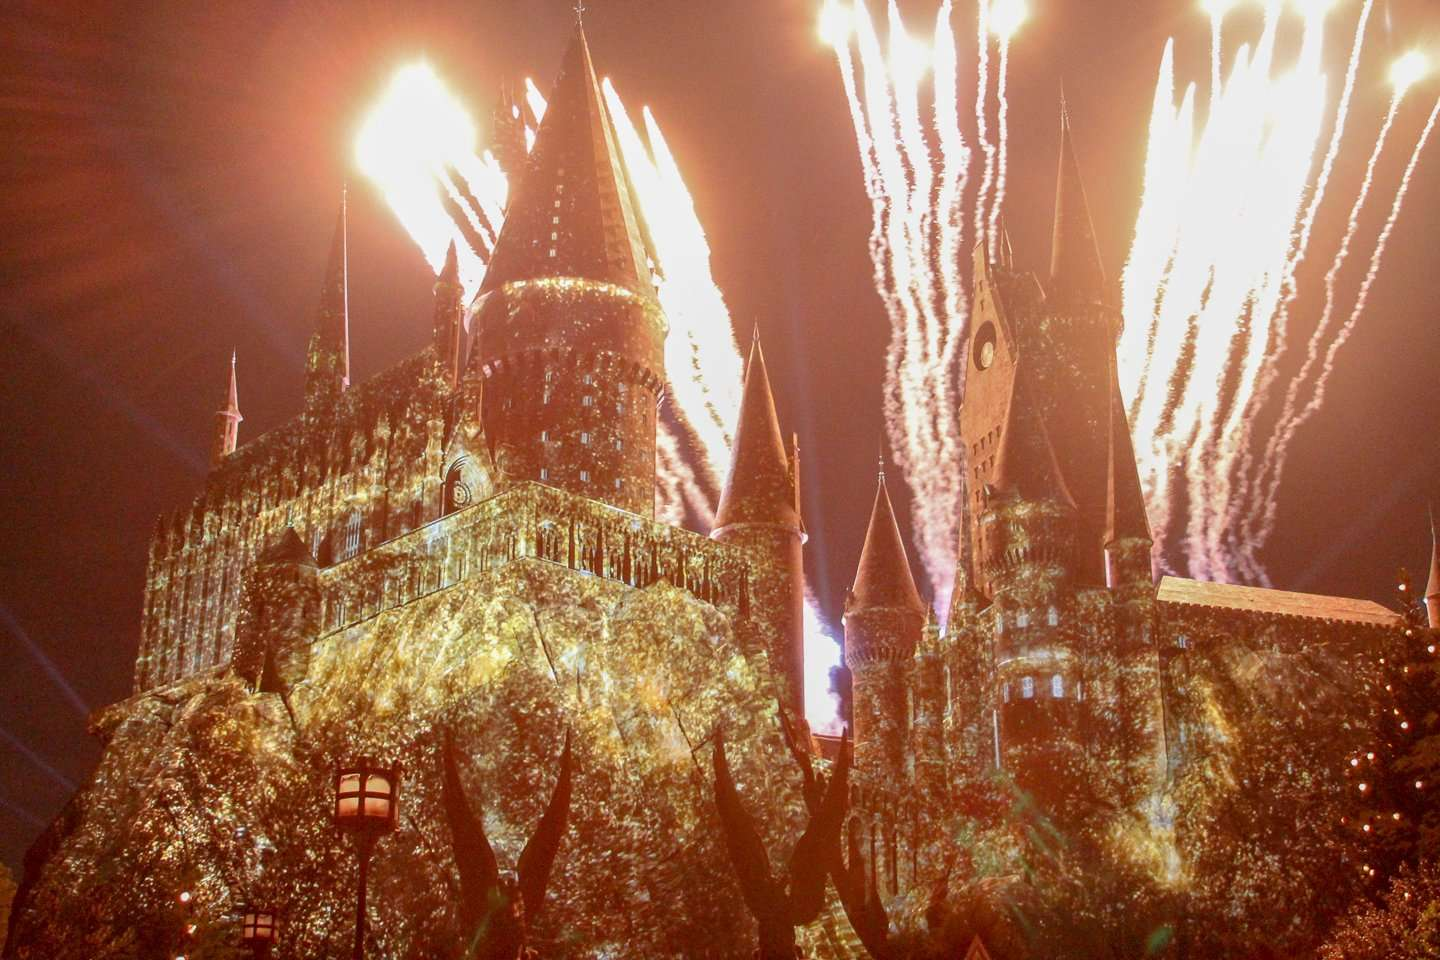 Wizarding World of Harry Potter Nighttime lights show.